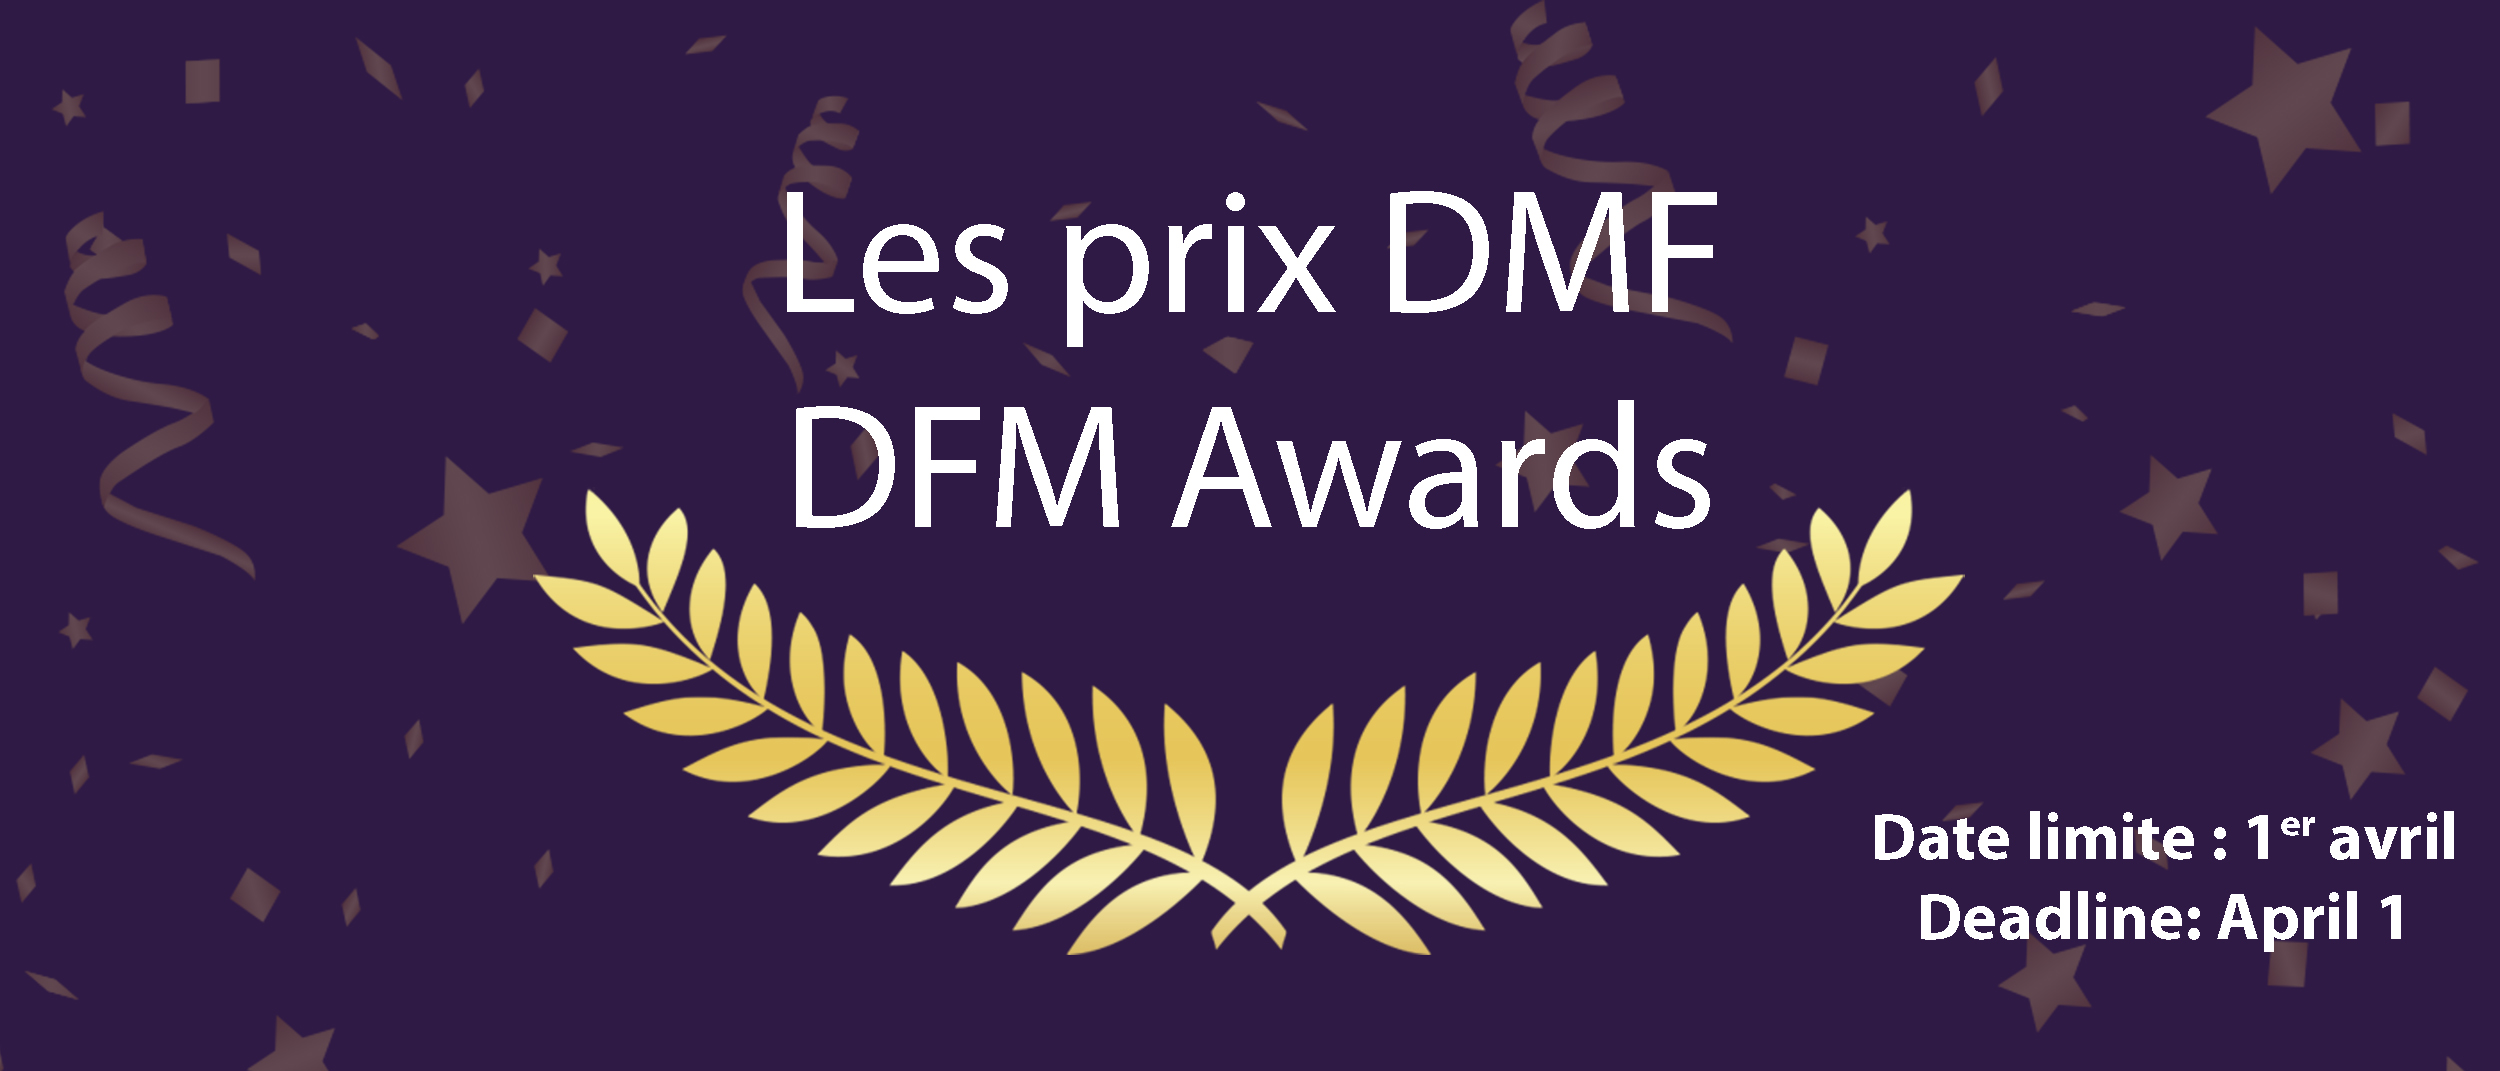 Confetti and laurel for the DFM Awards